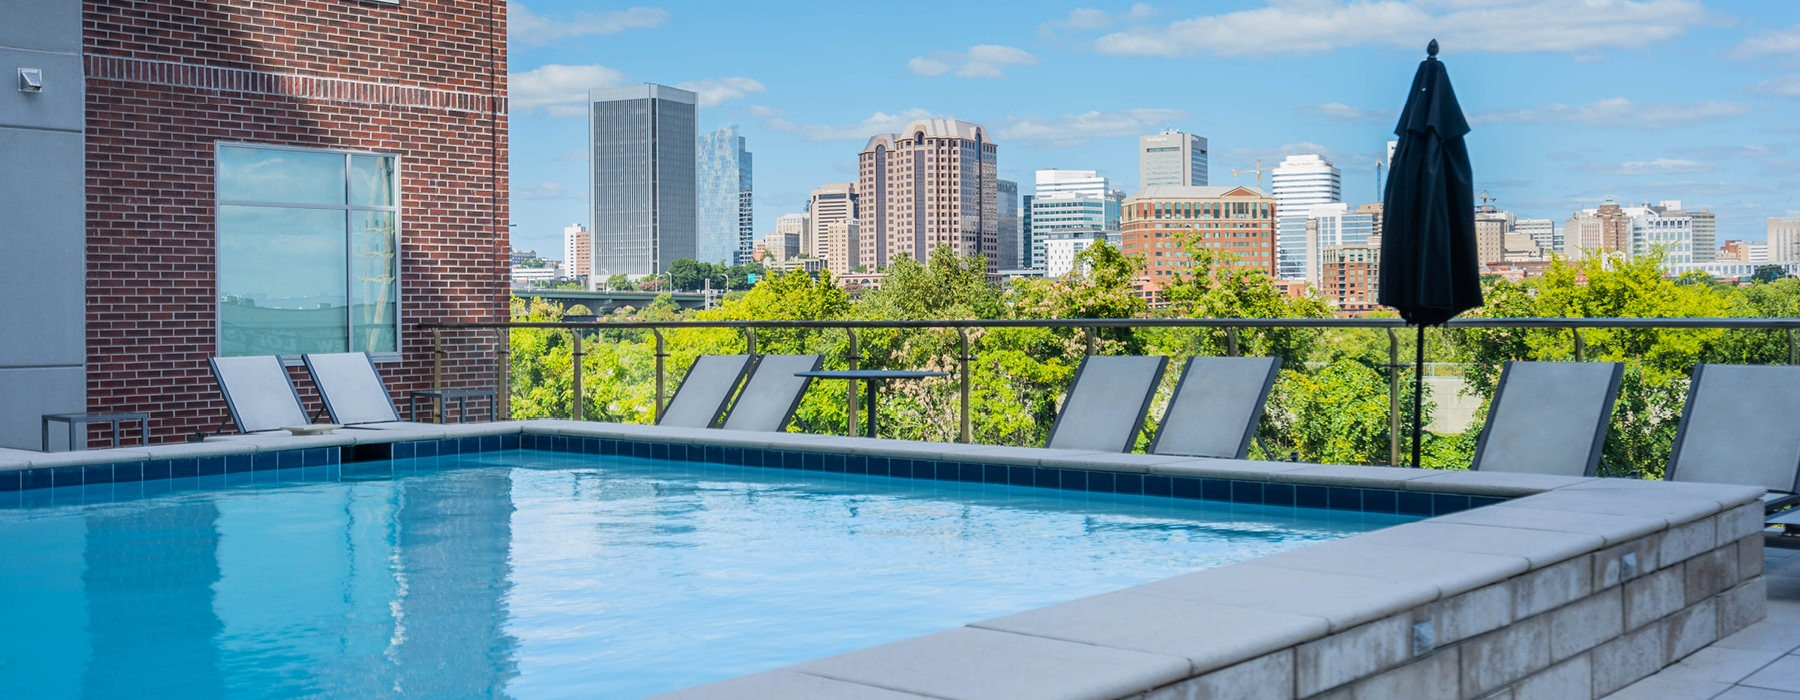 swimming pool on terrace with city views